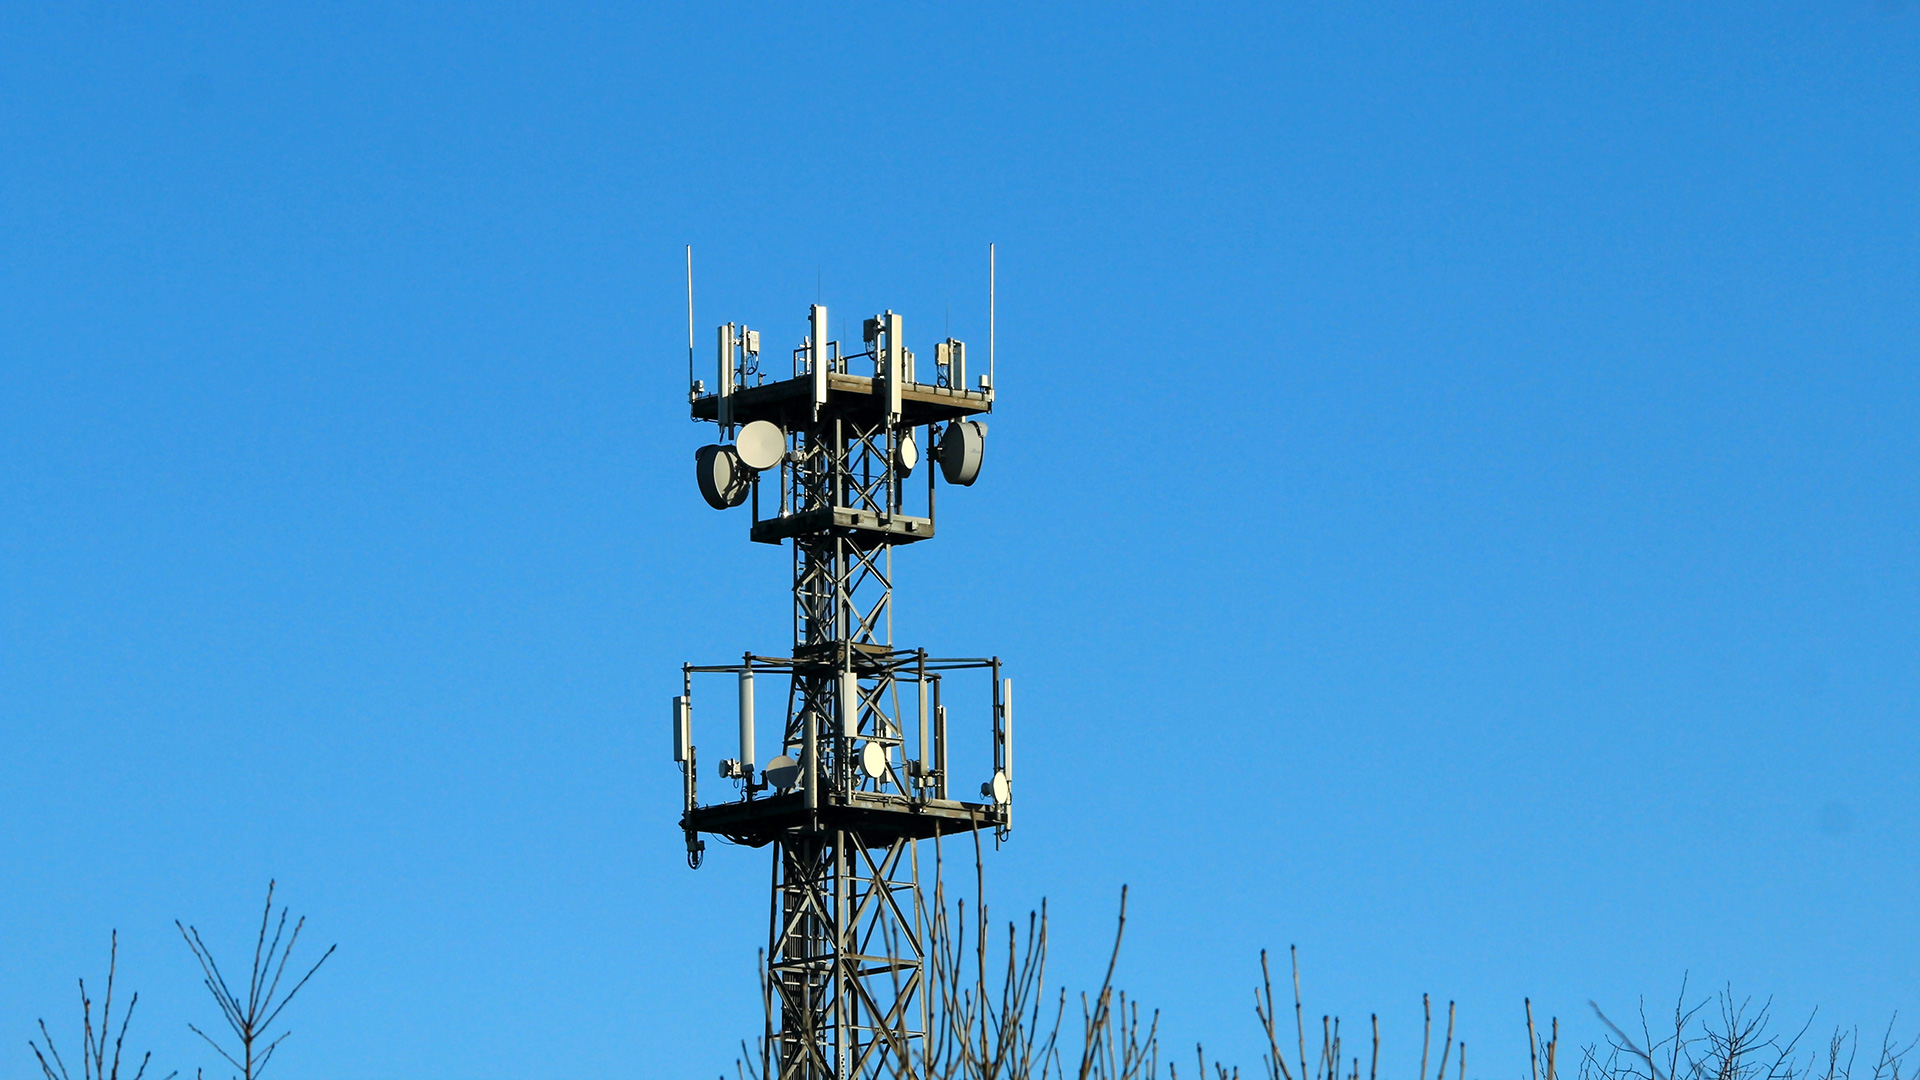 A skyline with a mobile radio mast above treetops.